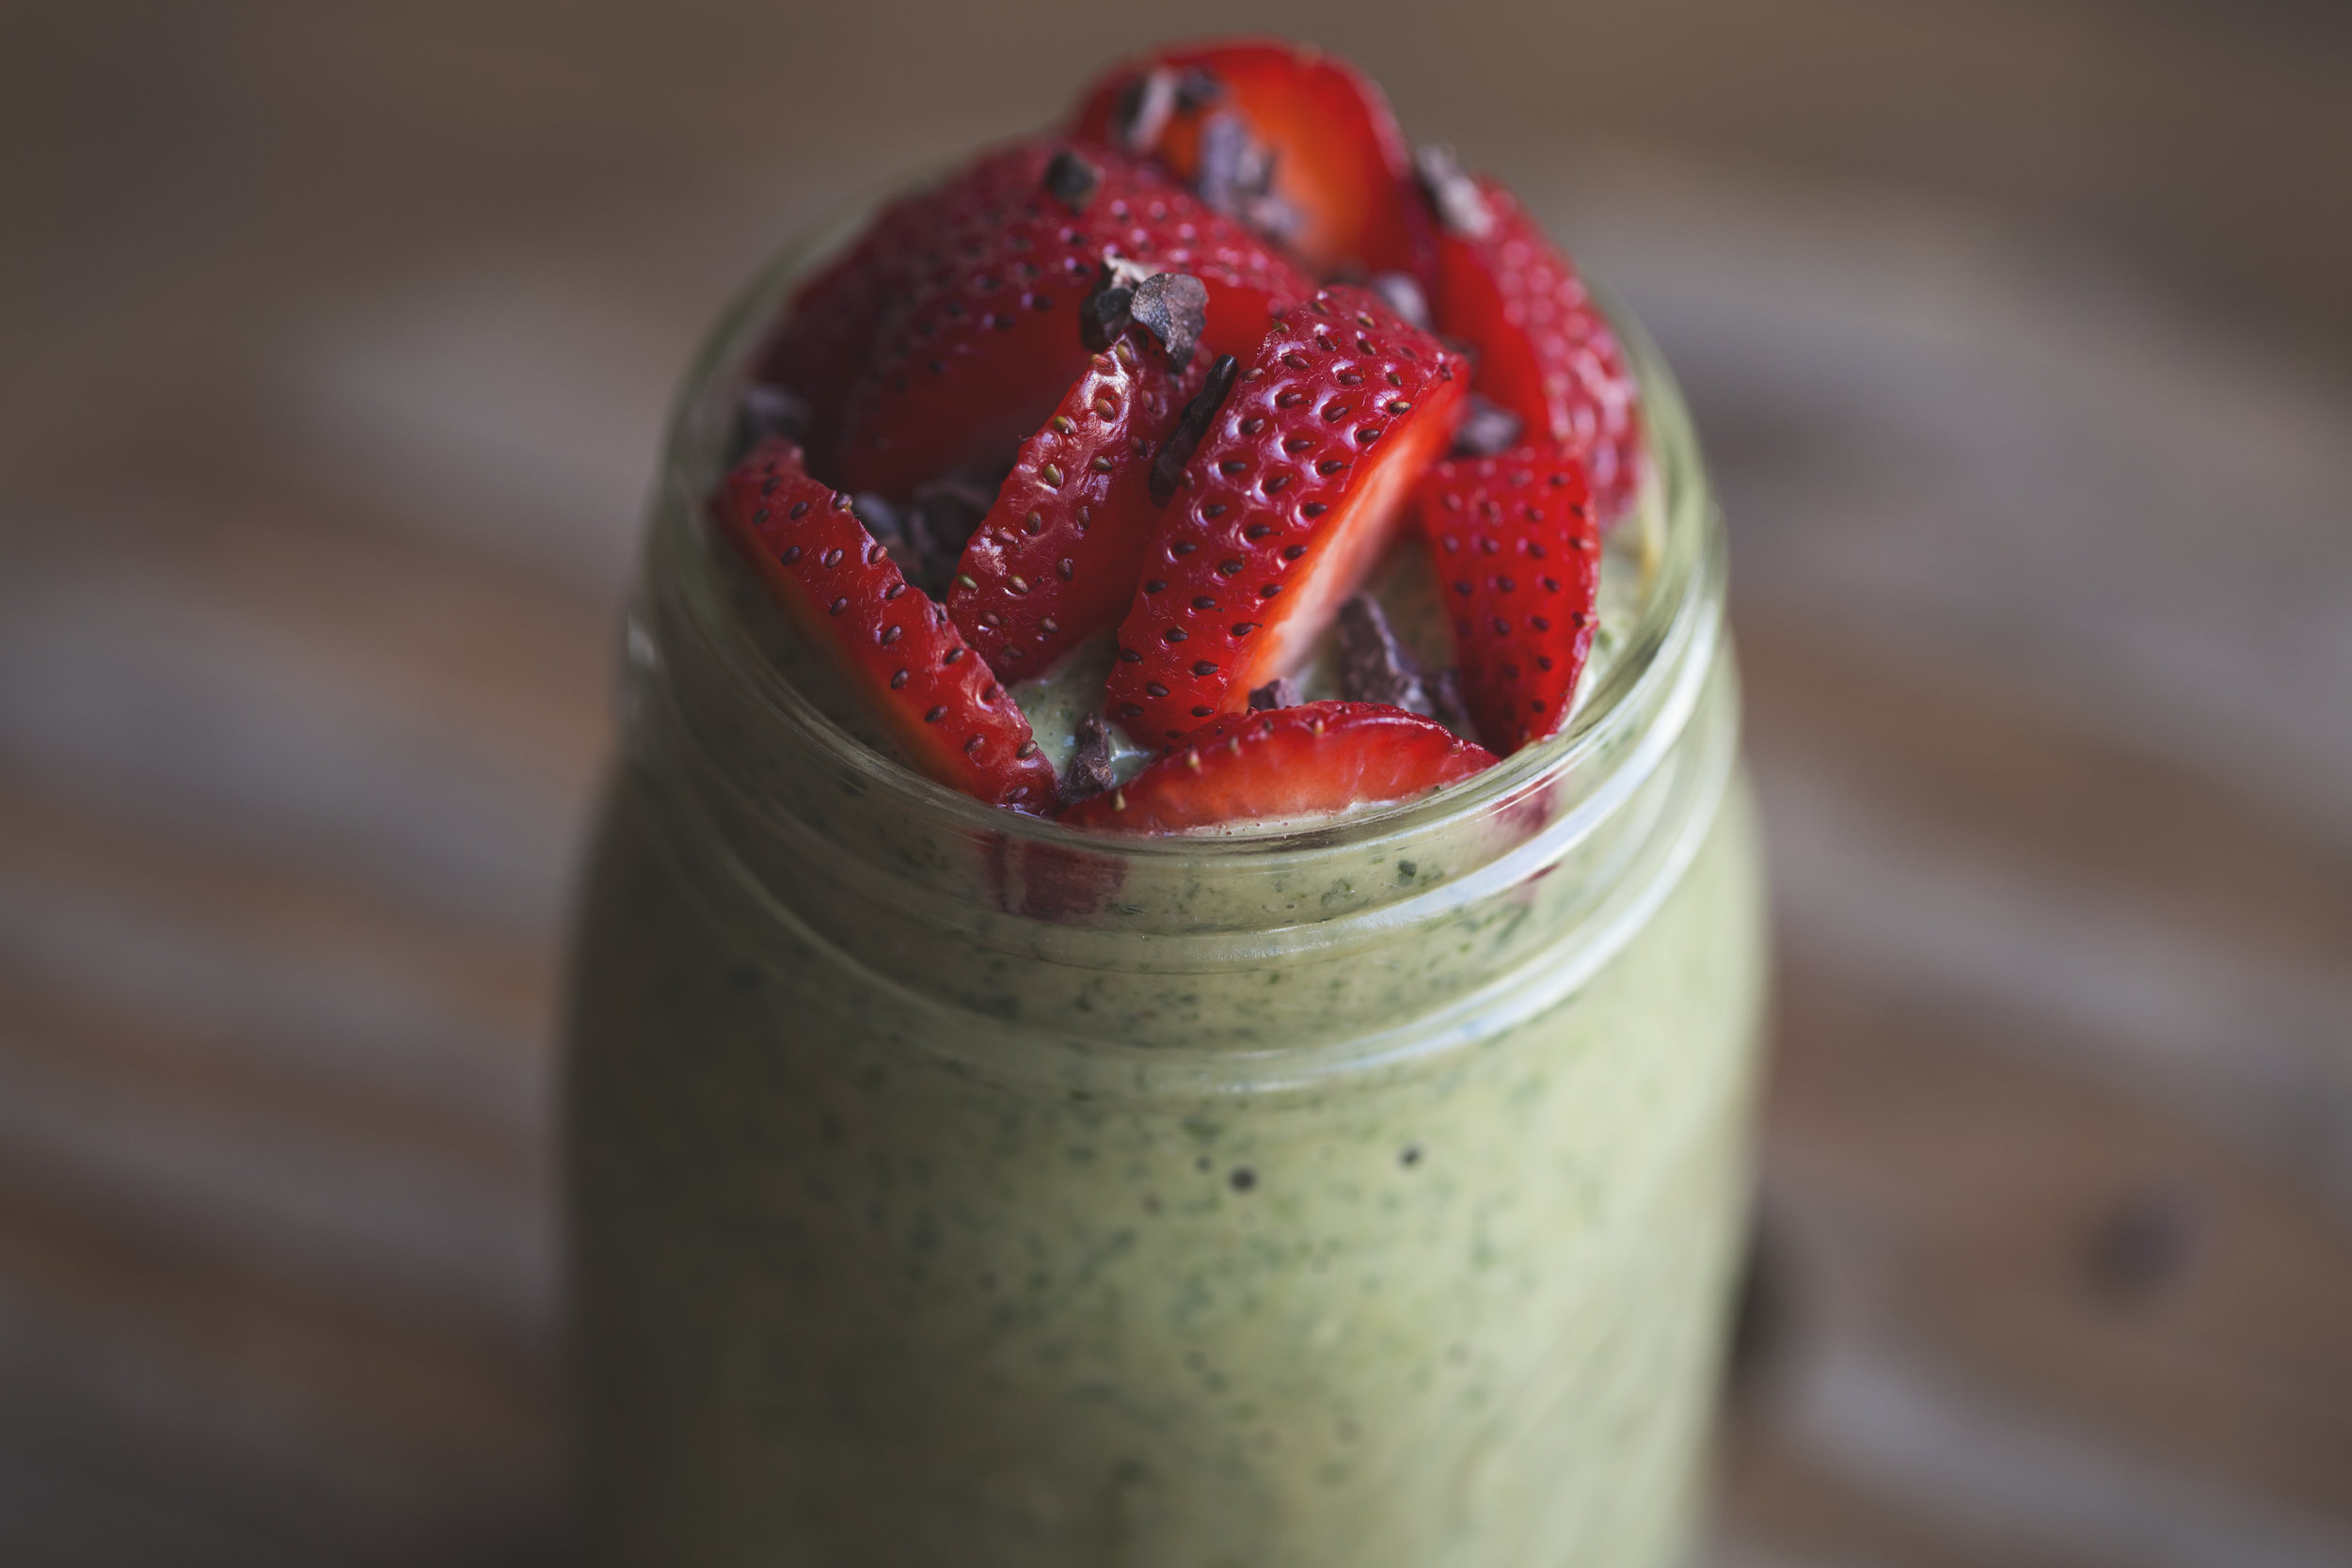 pre-workout green smoothie topped with fresh strawberries and cacao nibs